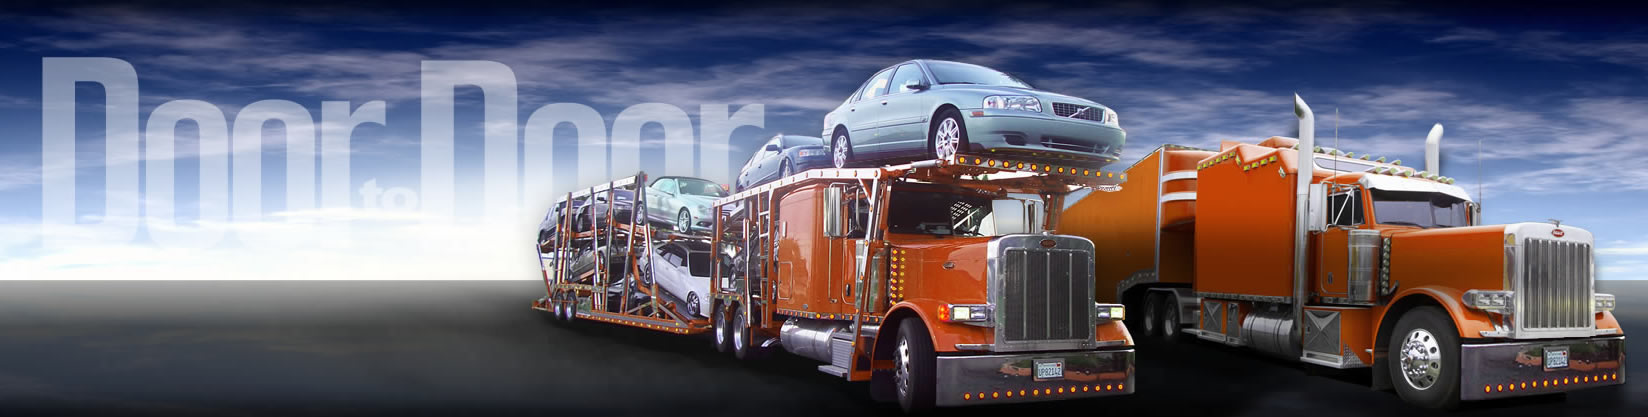 Vehicle Transport Quote Inspiration Door To Door Auto Transport  Auto Shipping And Auto Transport Quotes